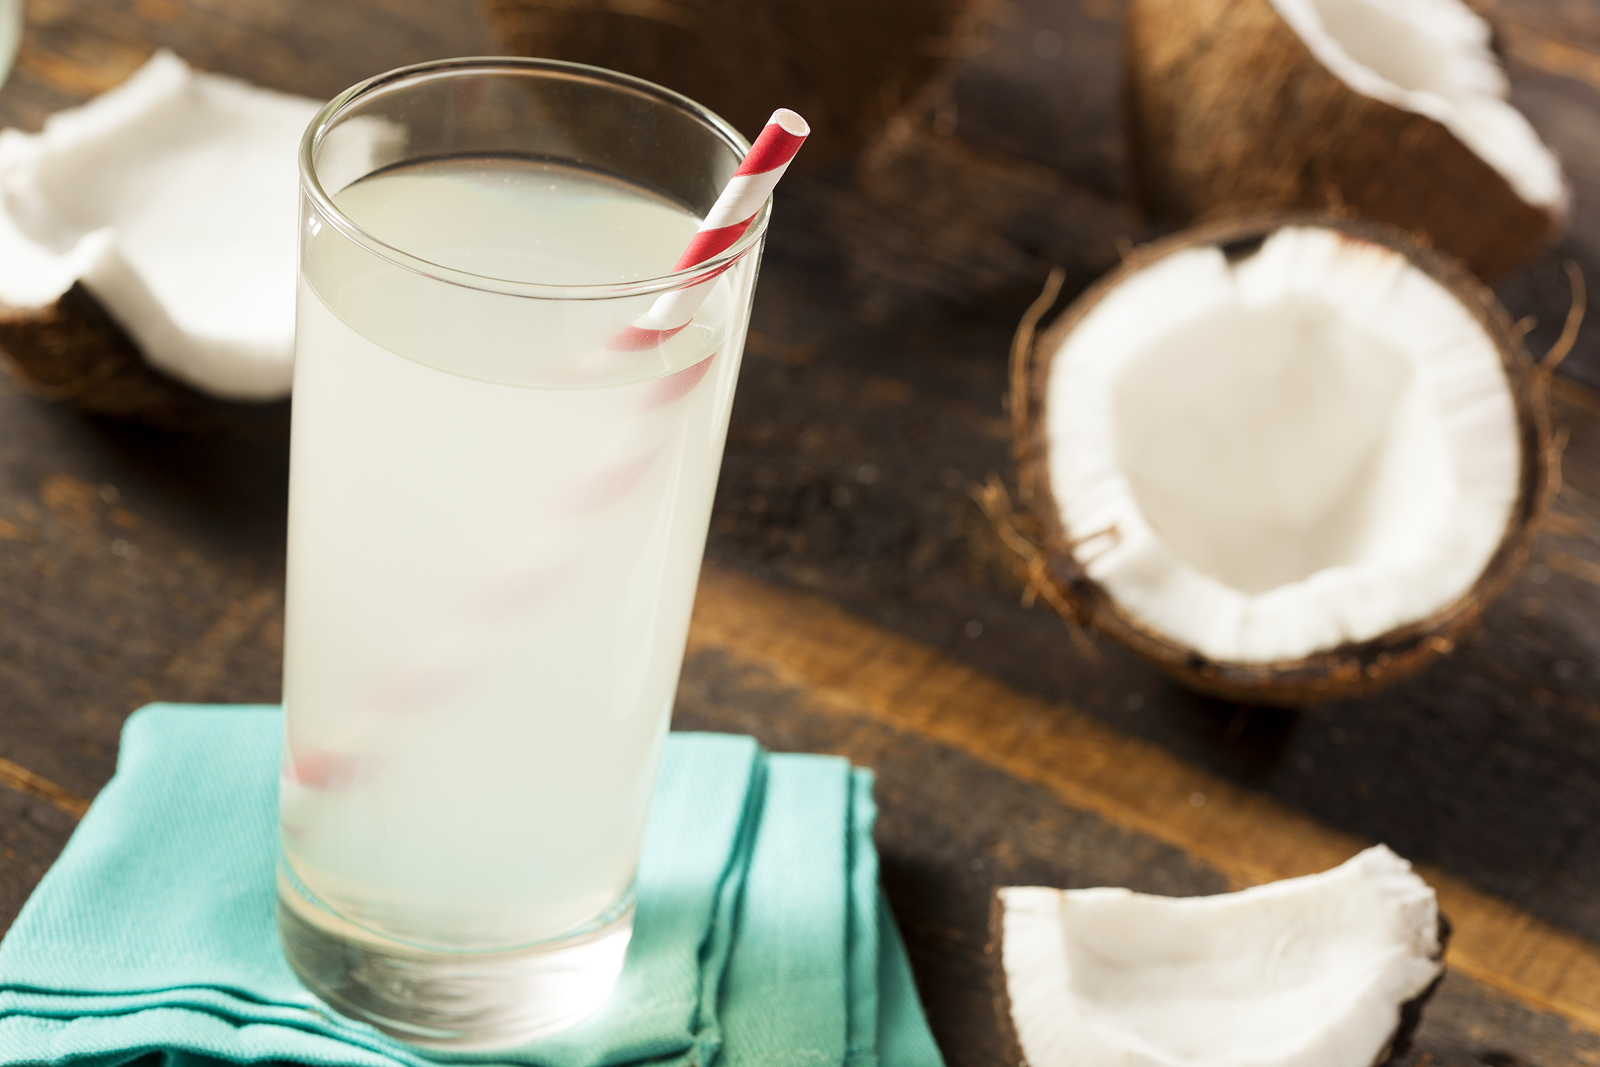 Fresh Organic Coconut Water in a Glass